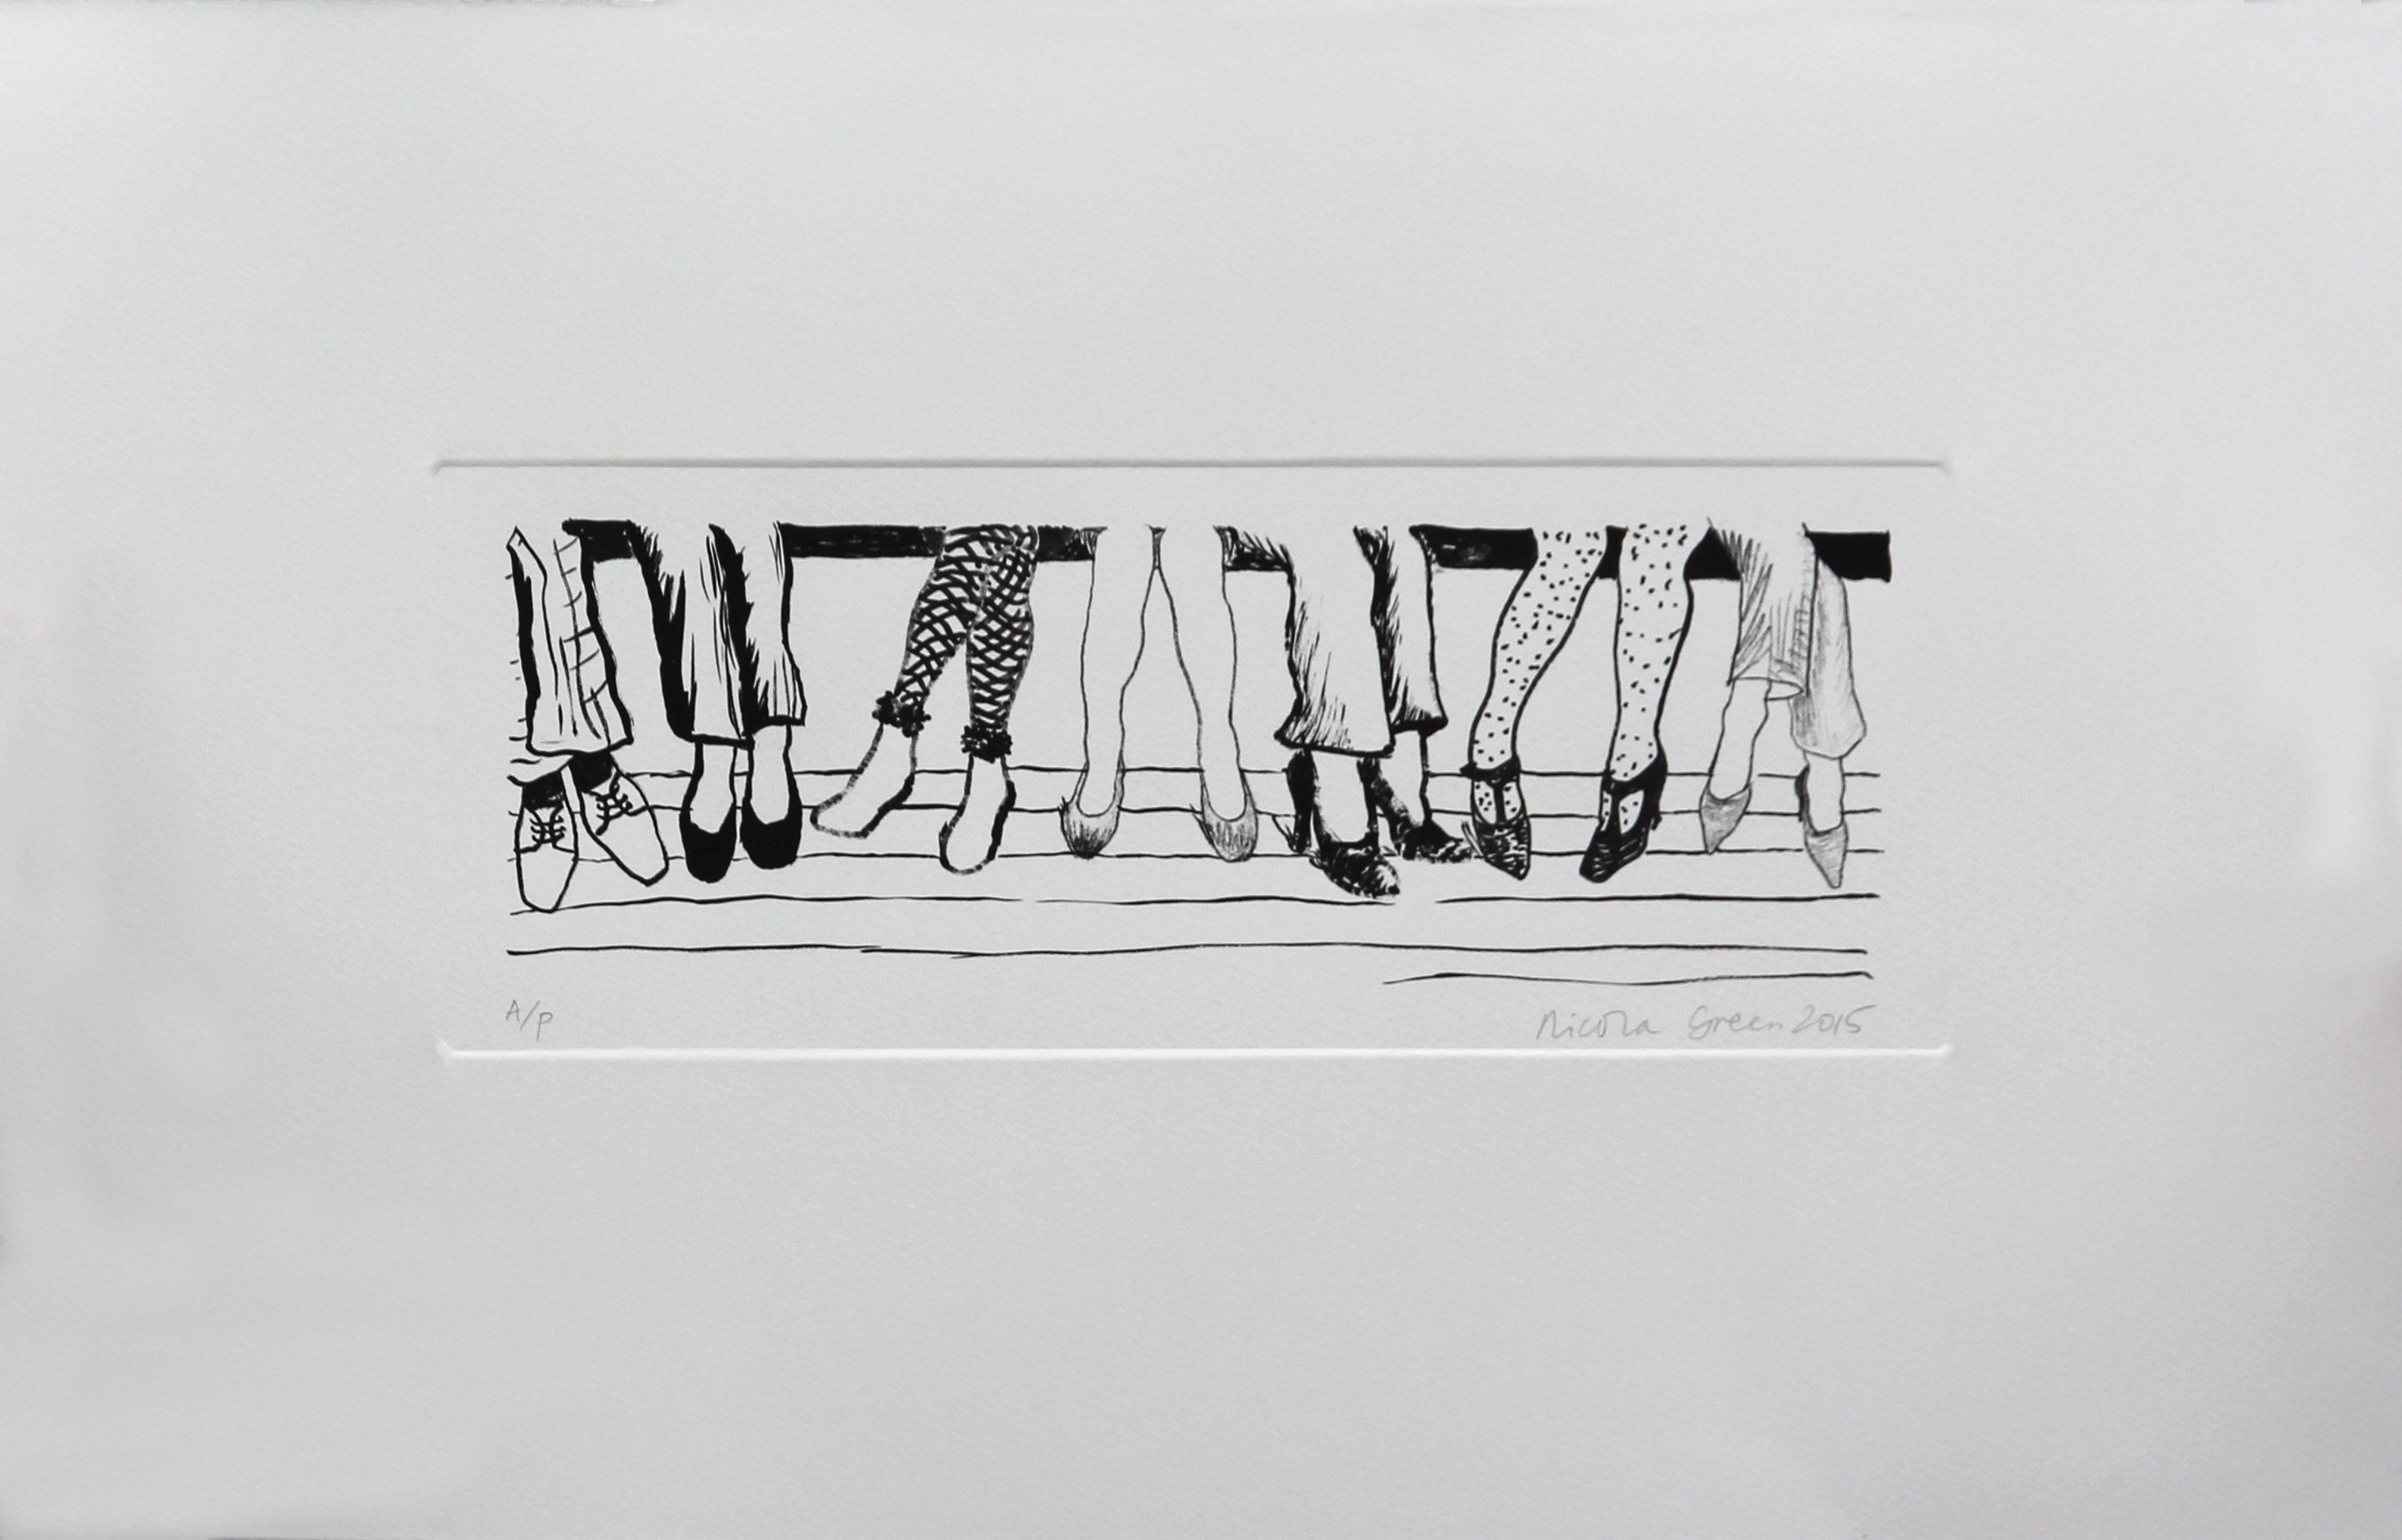 Feet 2015| H32.2 x W51.2 cm |Silkscreen print with water-based ink on 300 GSM cotton paper